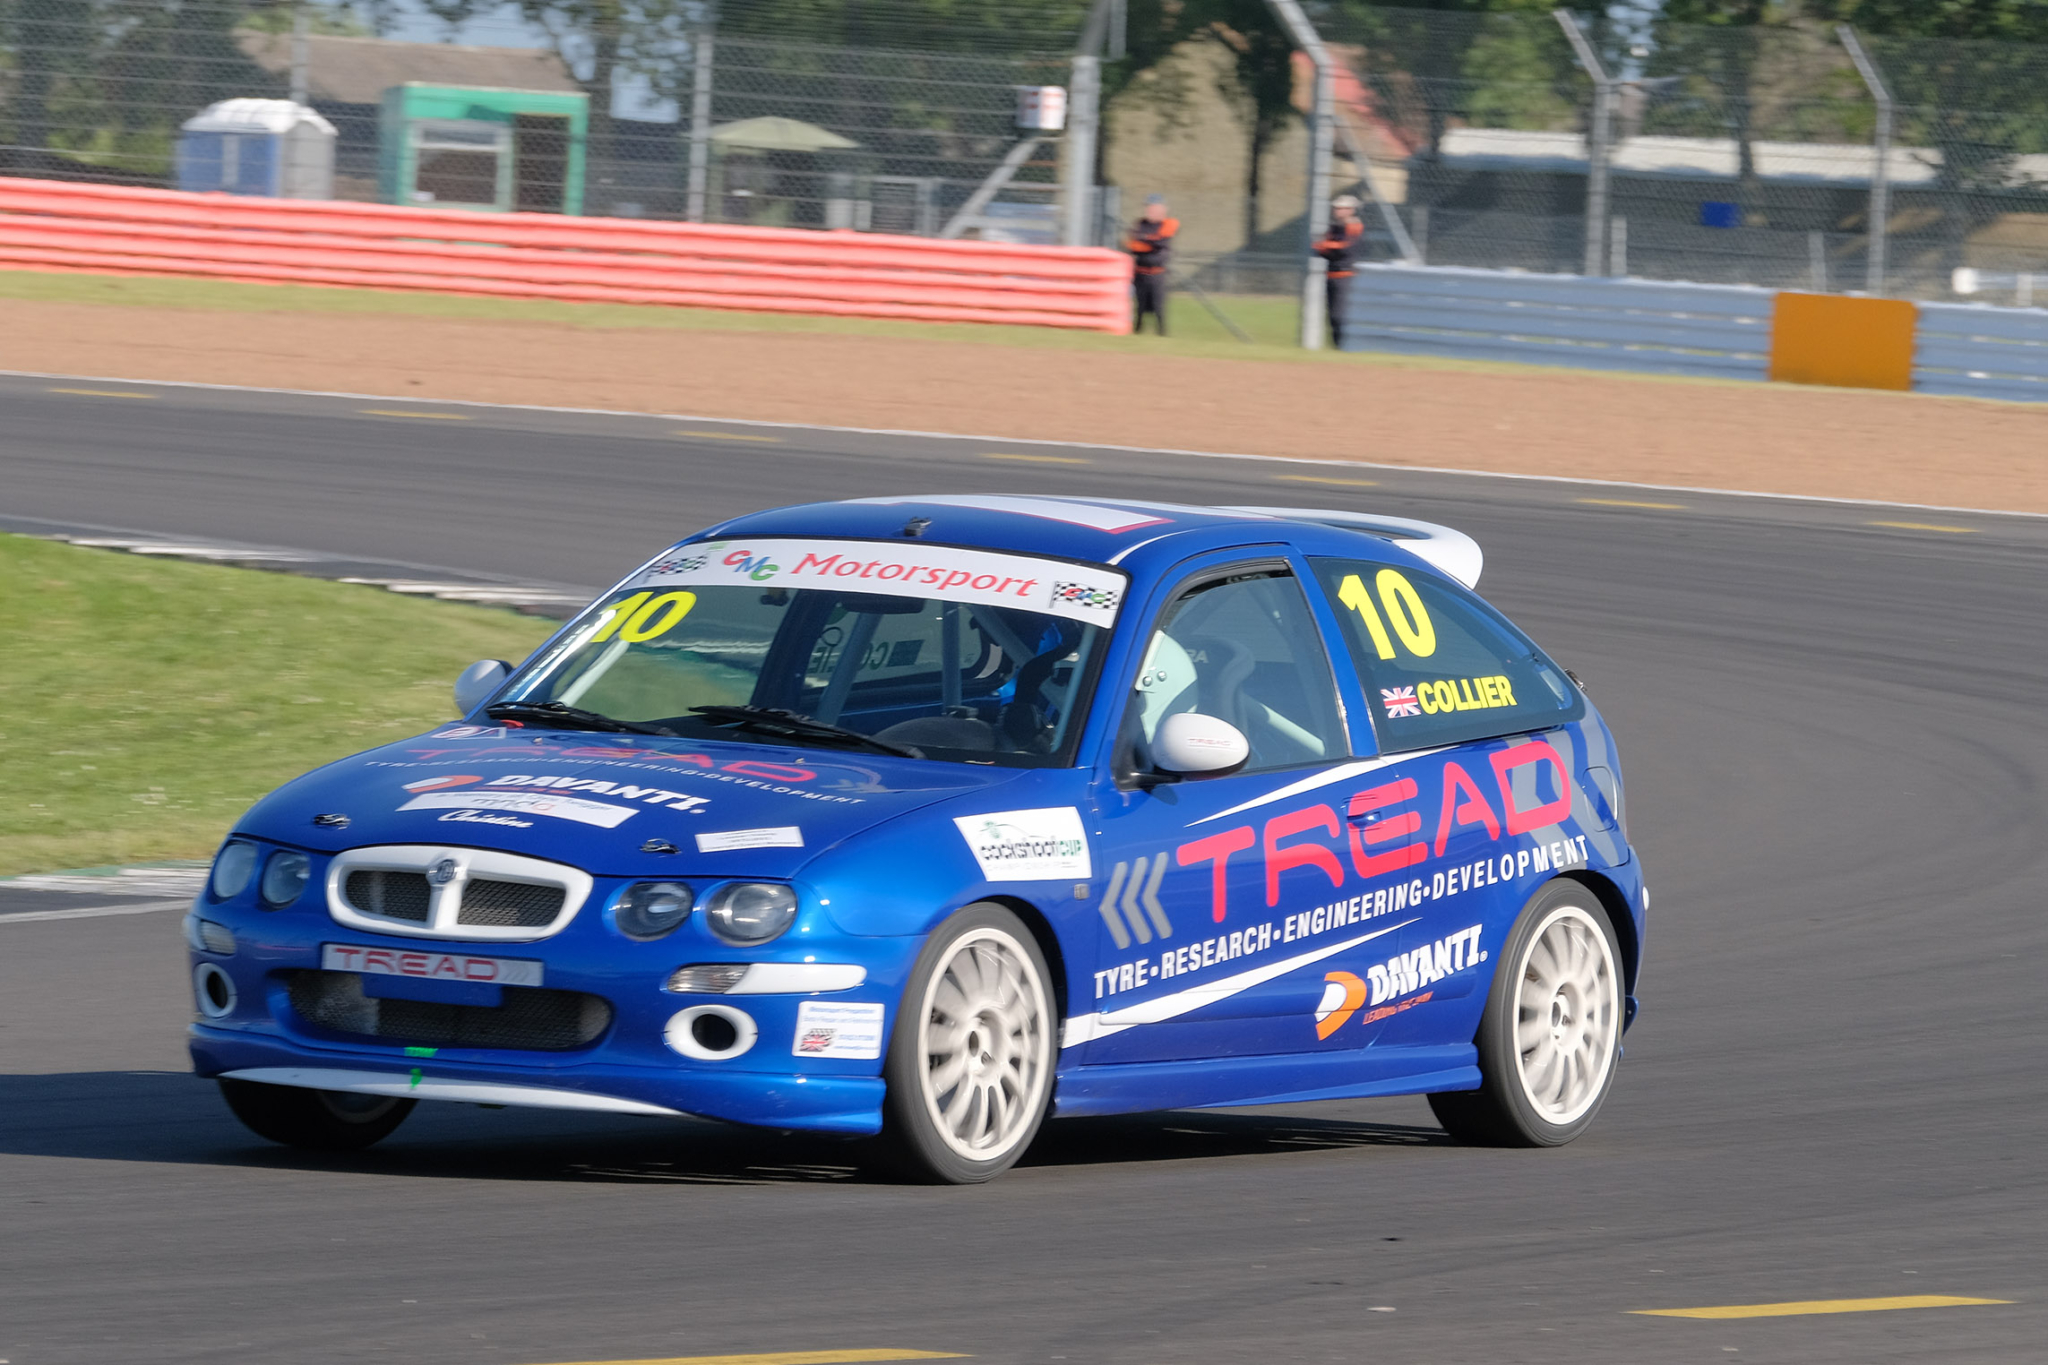 Tread test driver triumphs at Silverstone in MG series